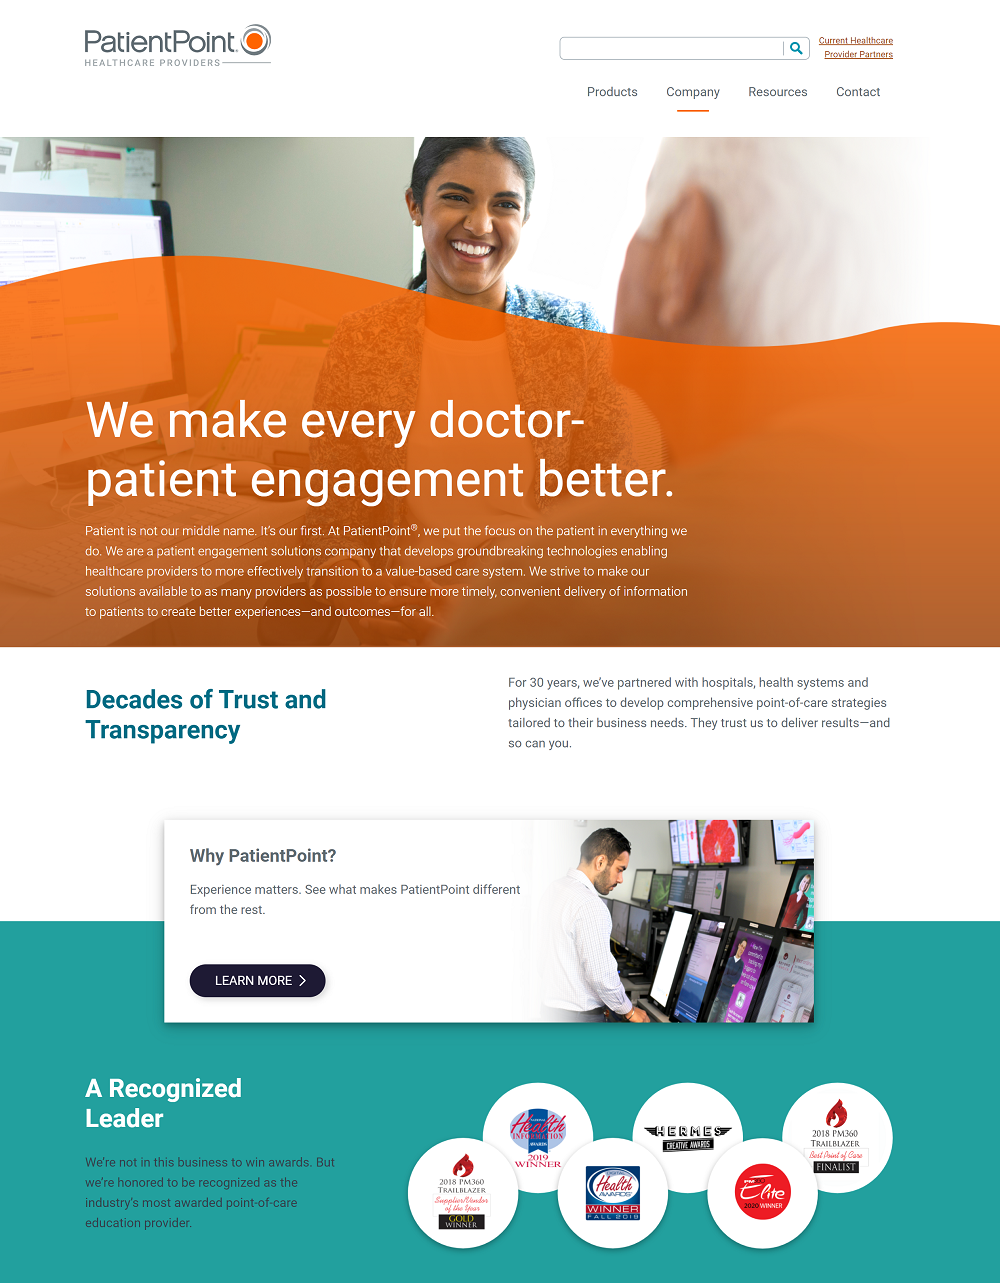 patientpoint career page